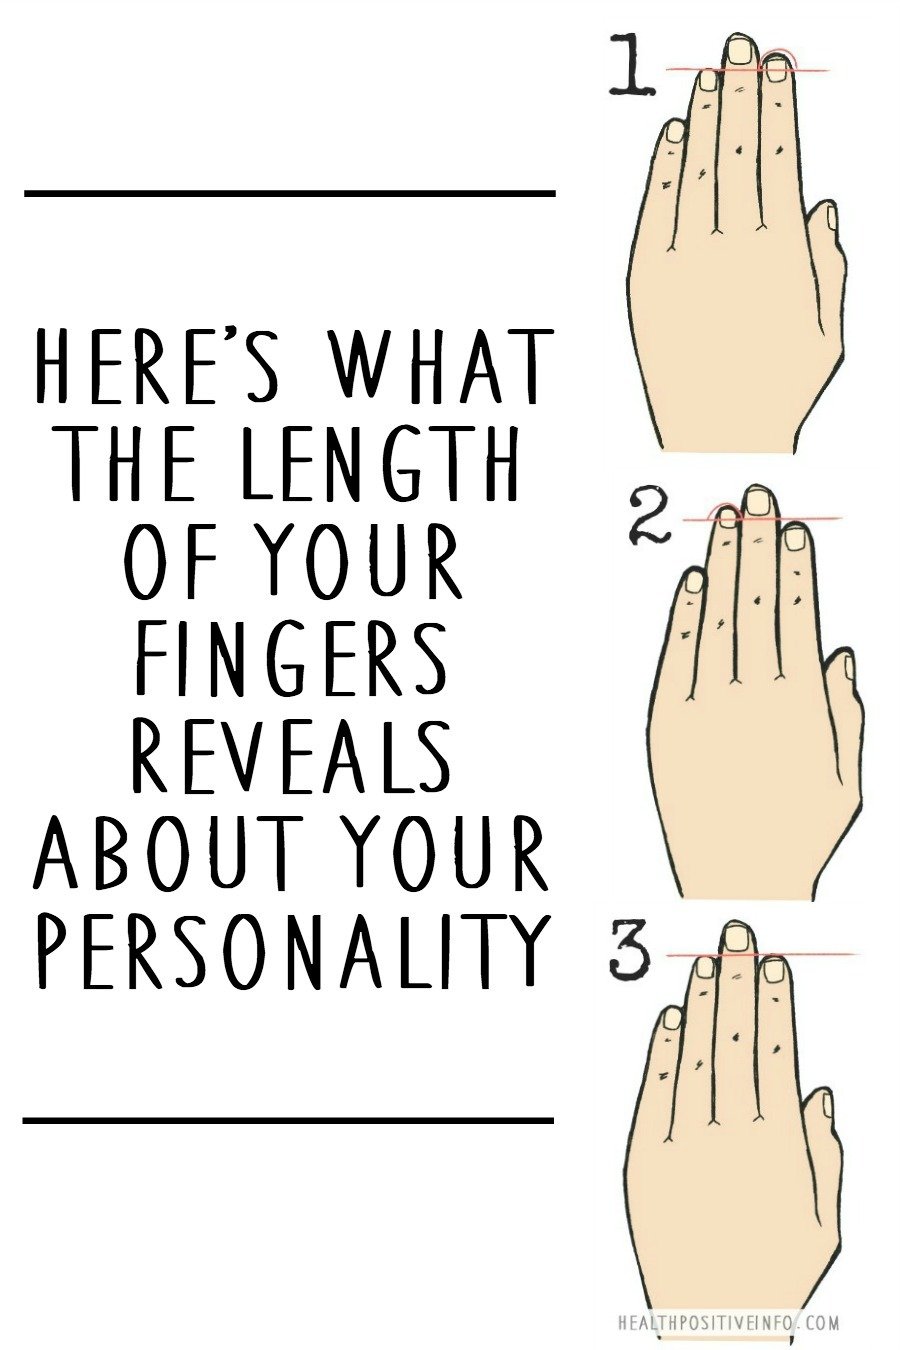 Here's What the Length of Your Fingers Reveals About Your Personality ~ https://healthpositiveinfo.com/length-of-your-fingers-personality.html